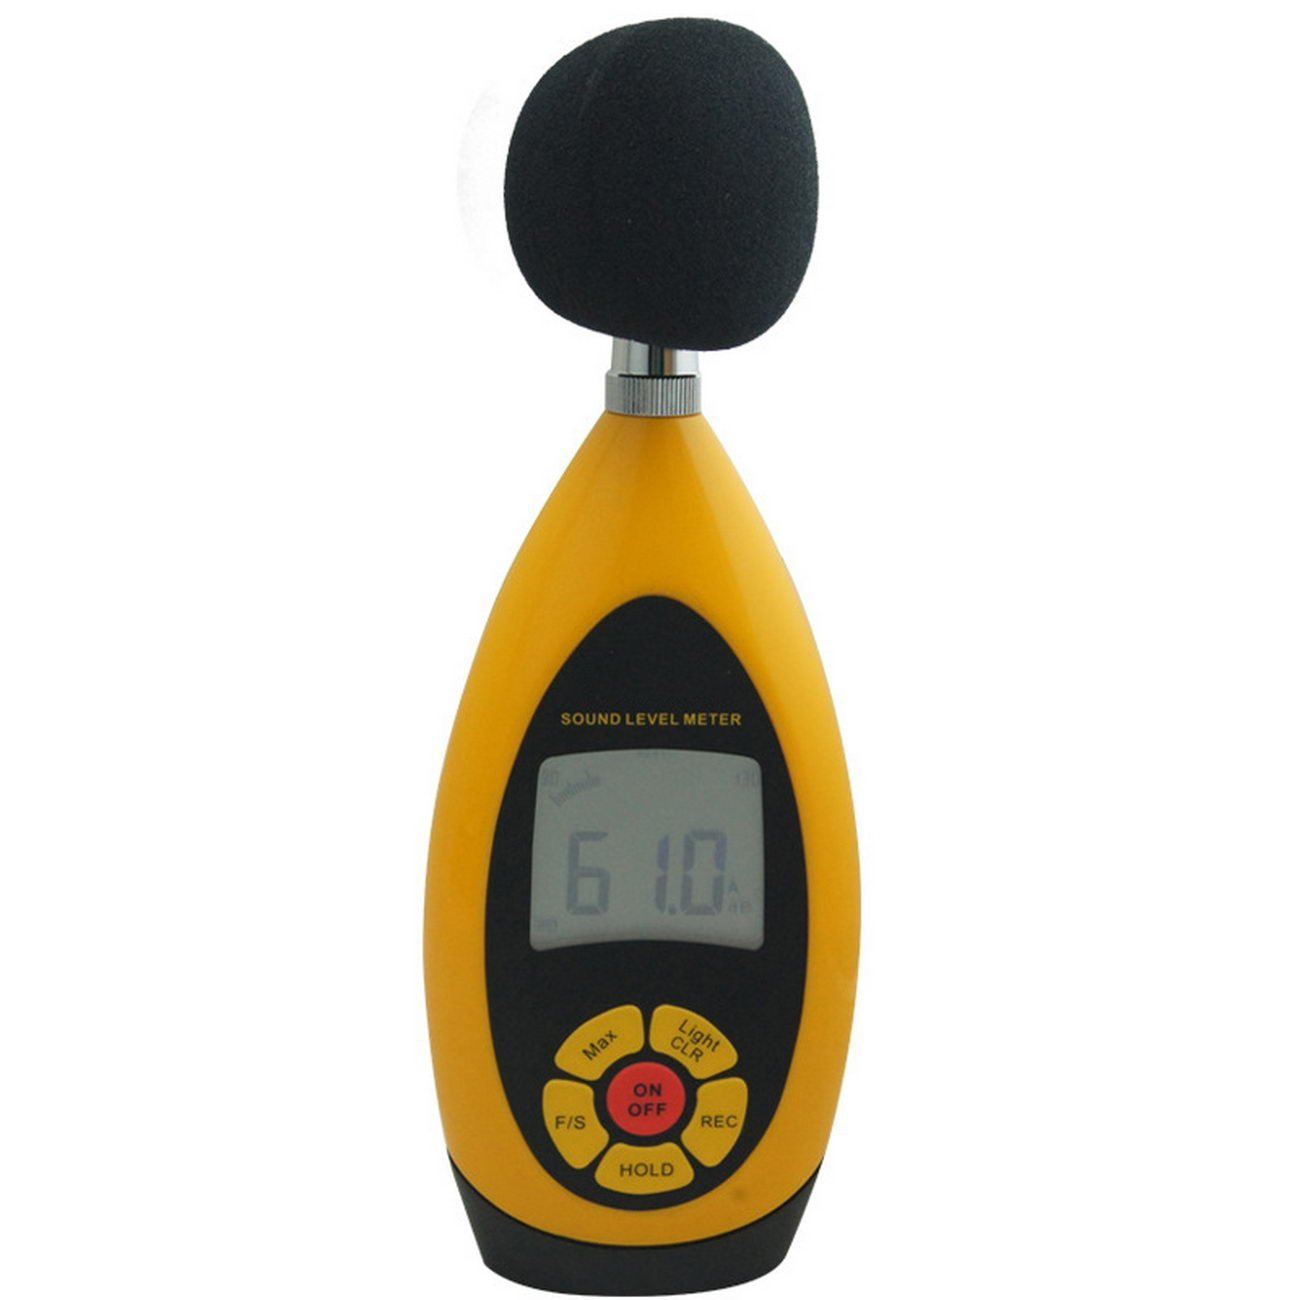 jii2030shann digital sound level meter ar854 digital sound level meter decibel meter noise meter security voice, digital sound level meter, noise tester, ar854 noise meter, sound level meter, n